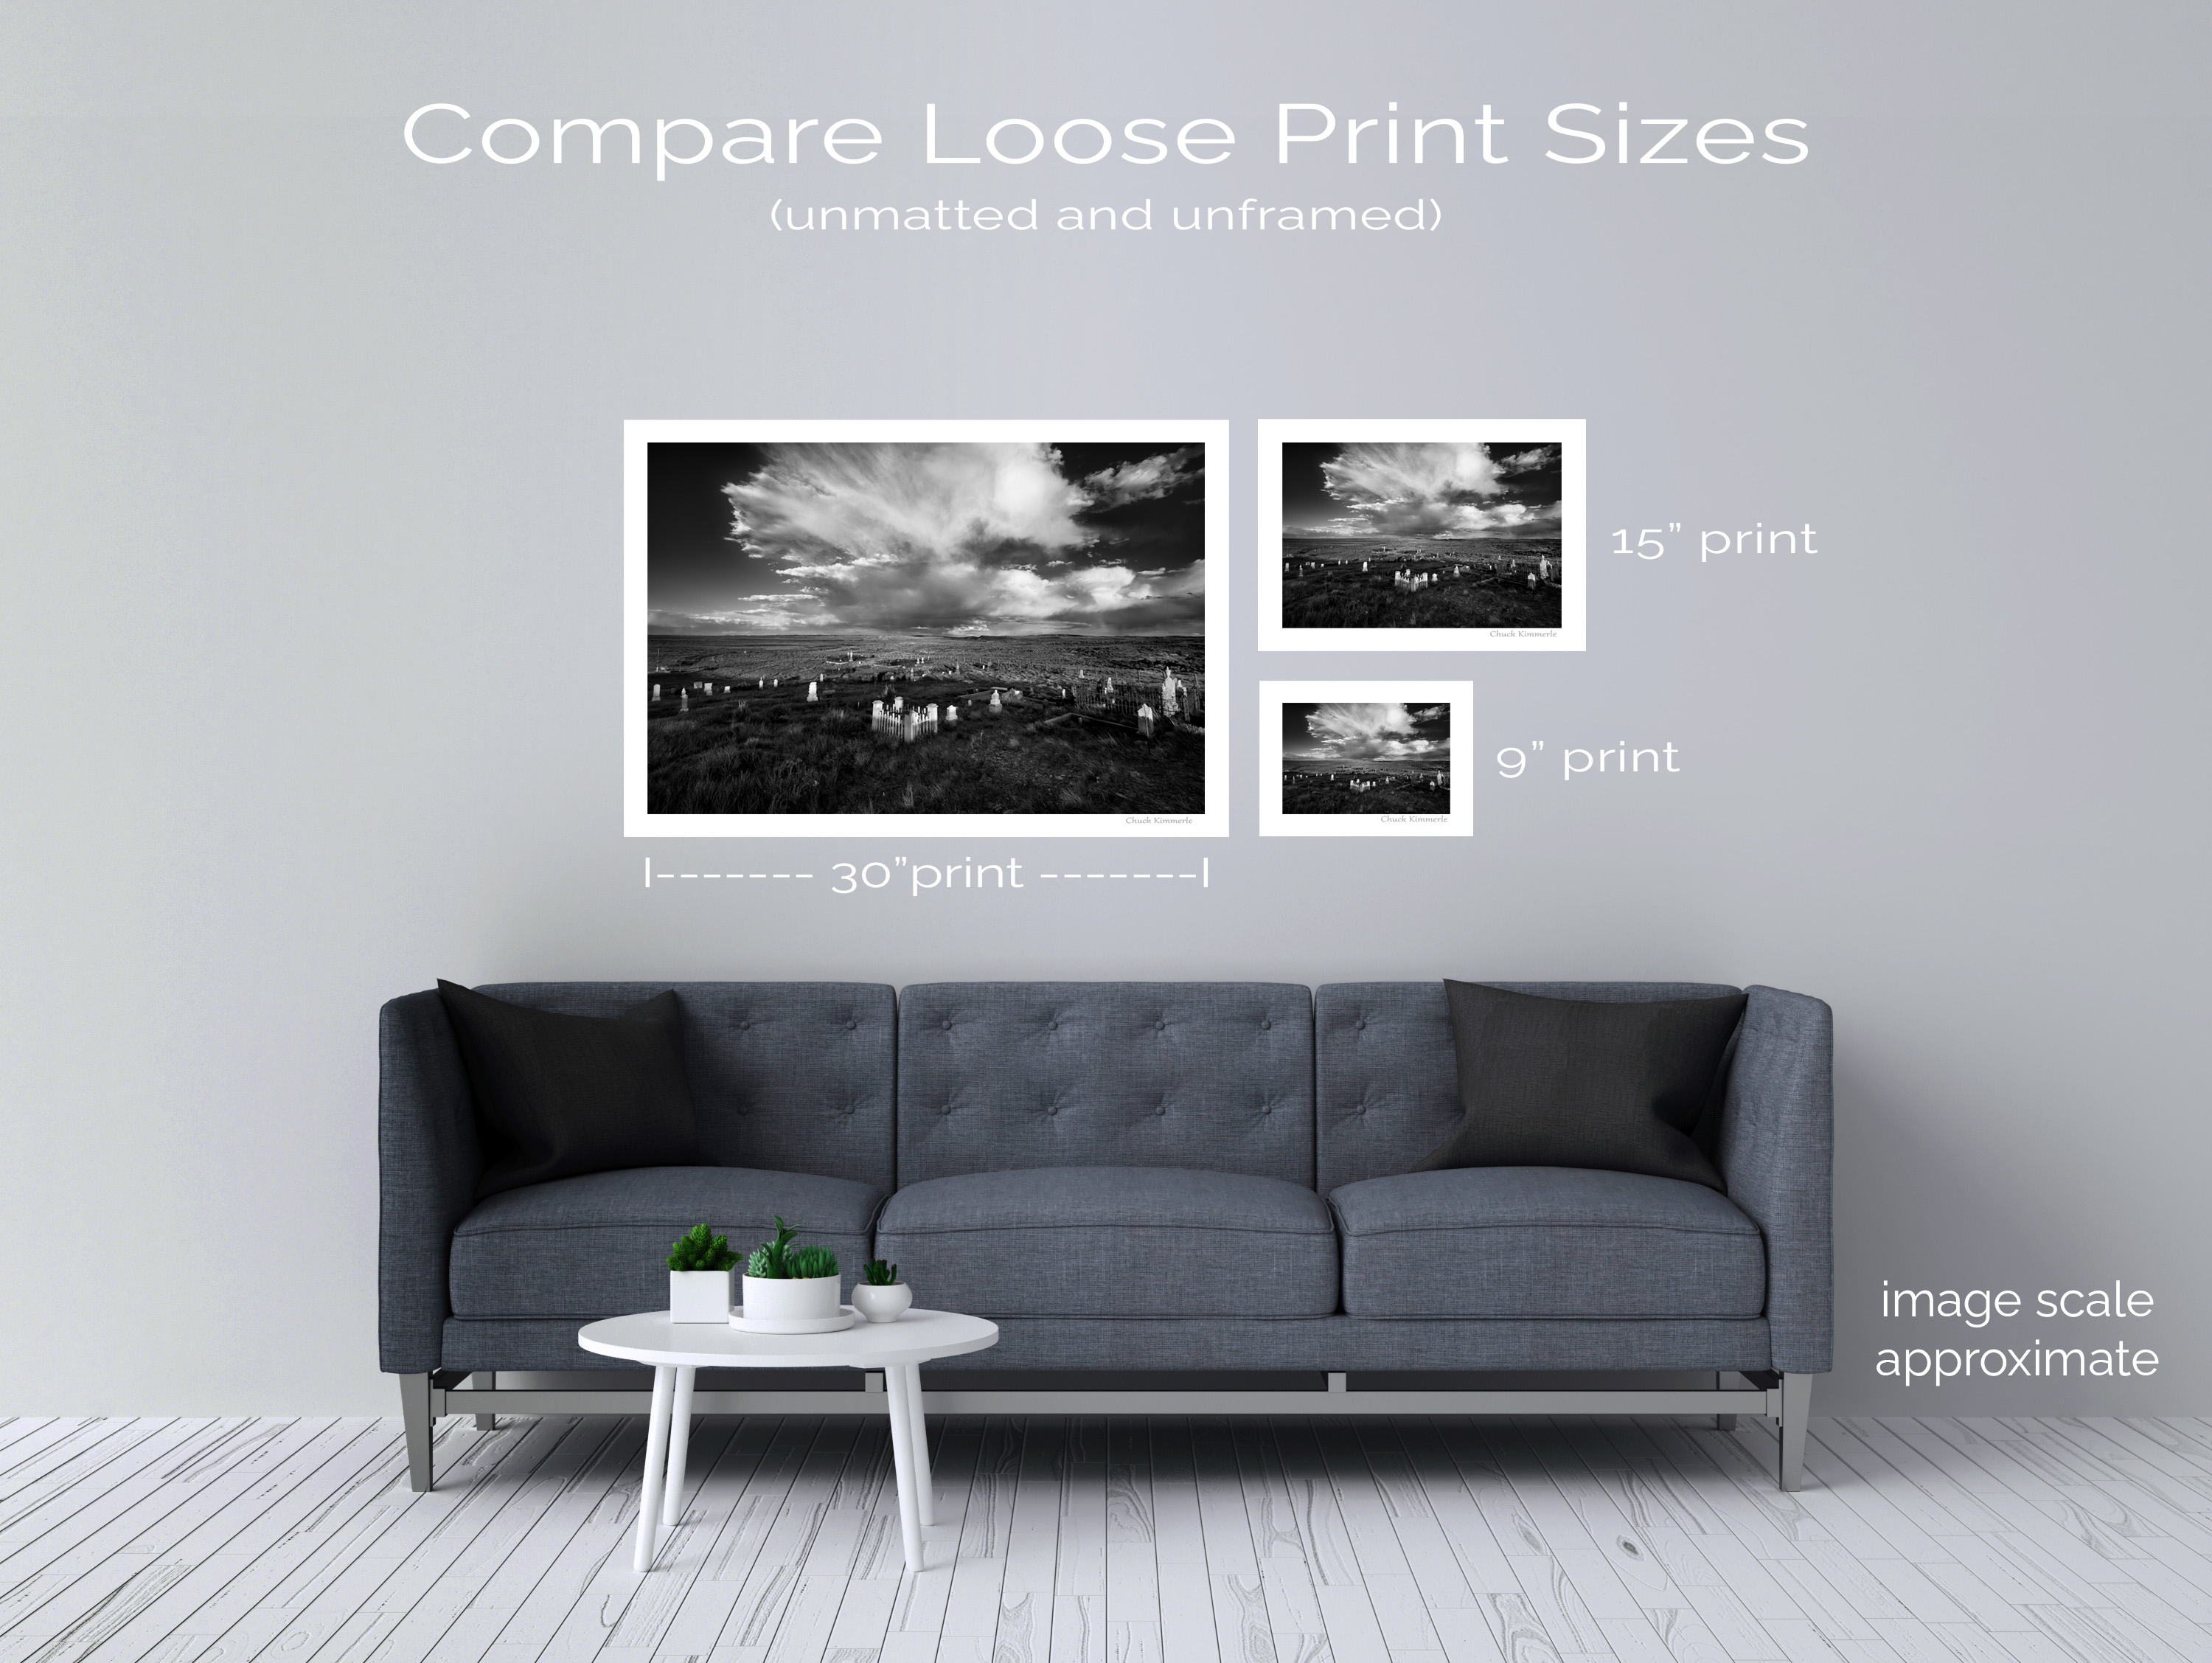 Interior Wall Gallery Mockup with Decoration